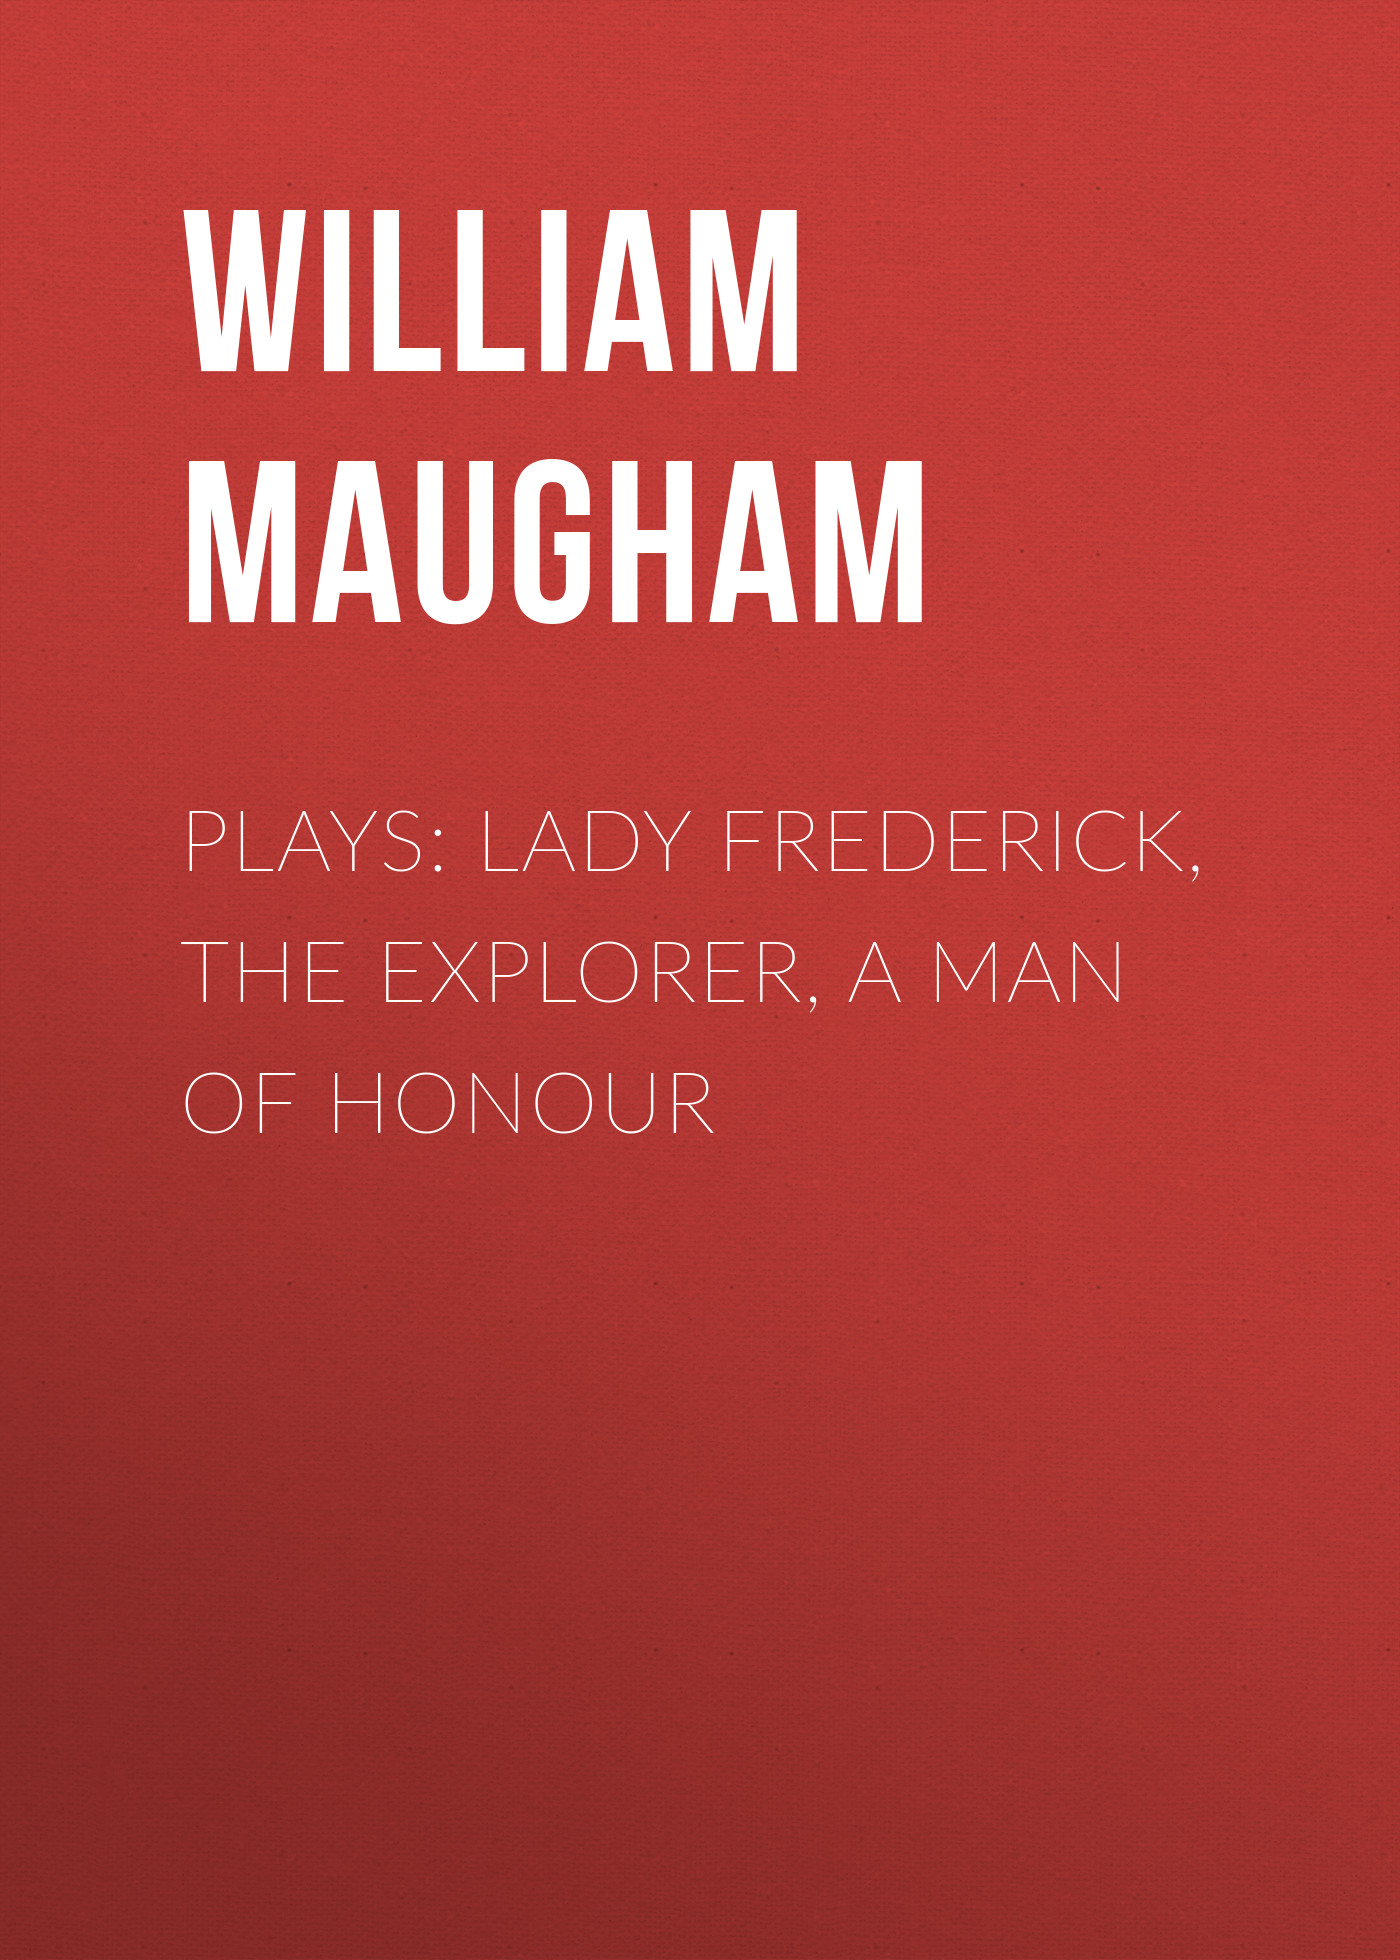 Maugham William Somerset Plays: Lady Frederick, The Explorer, A Man of Honour iain gale man of honour